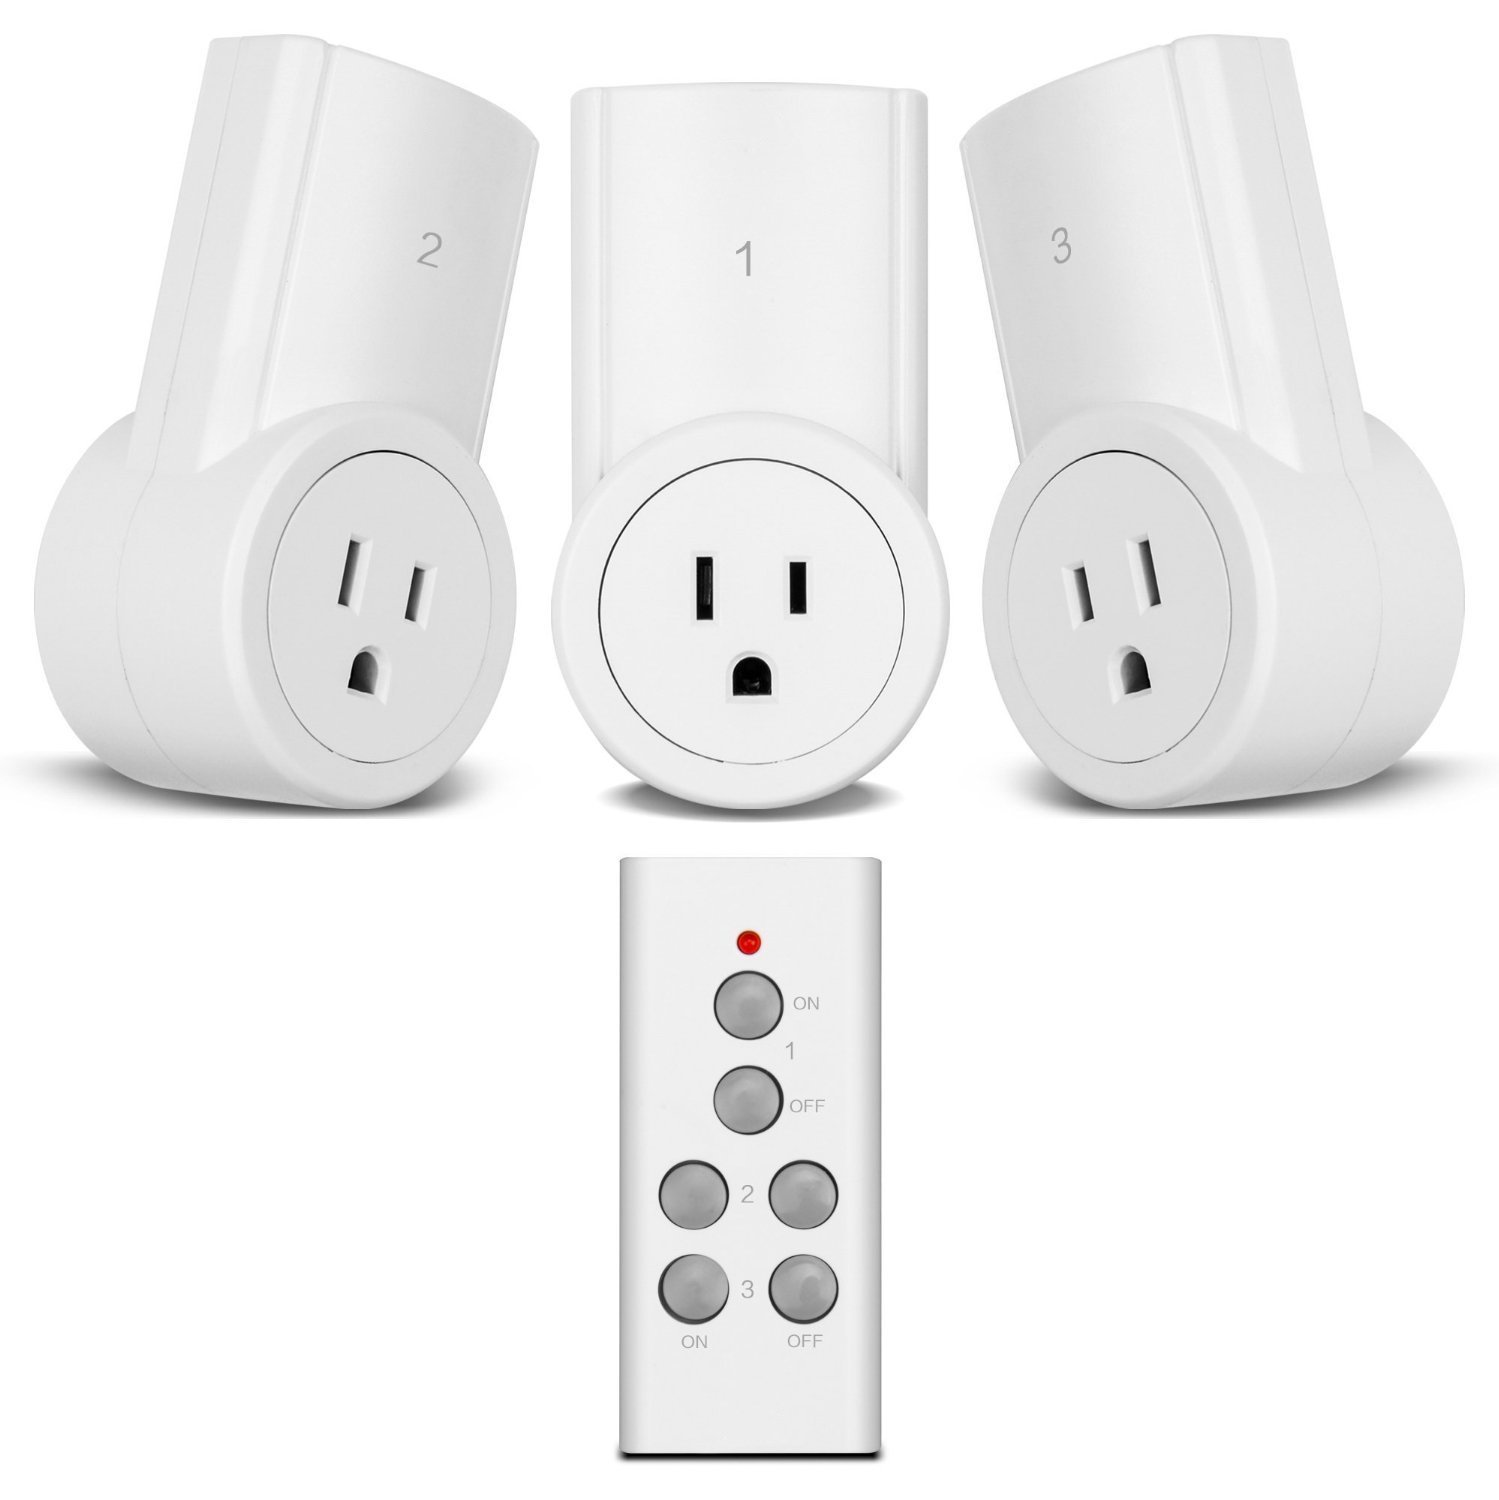 Etekcity Remote Control Outlet Wireless Light Switch for Household Appliances, Unlimited Connections, FCC ETL Listed, White (3Rx-1Tx) by Etekcity